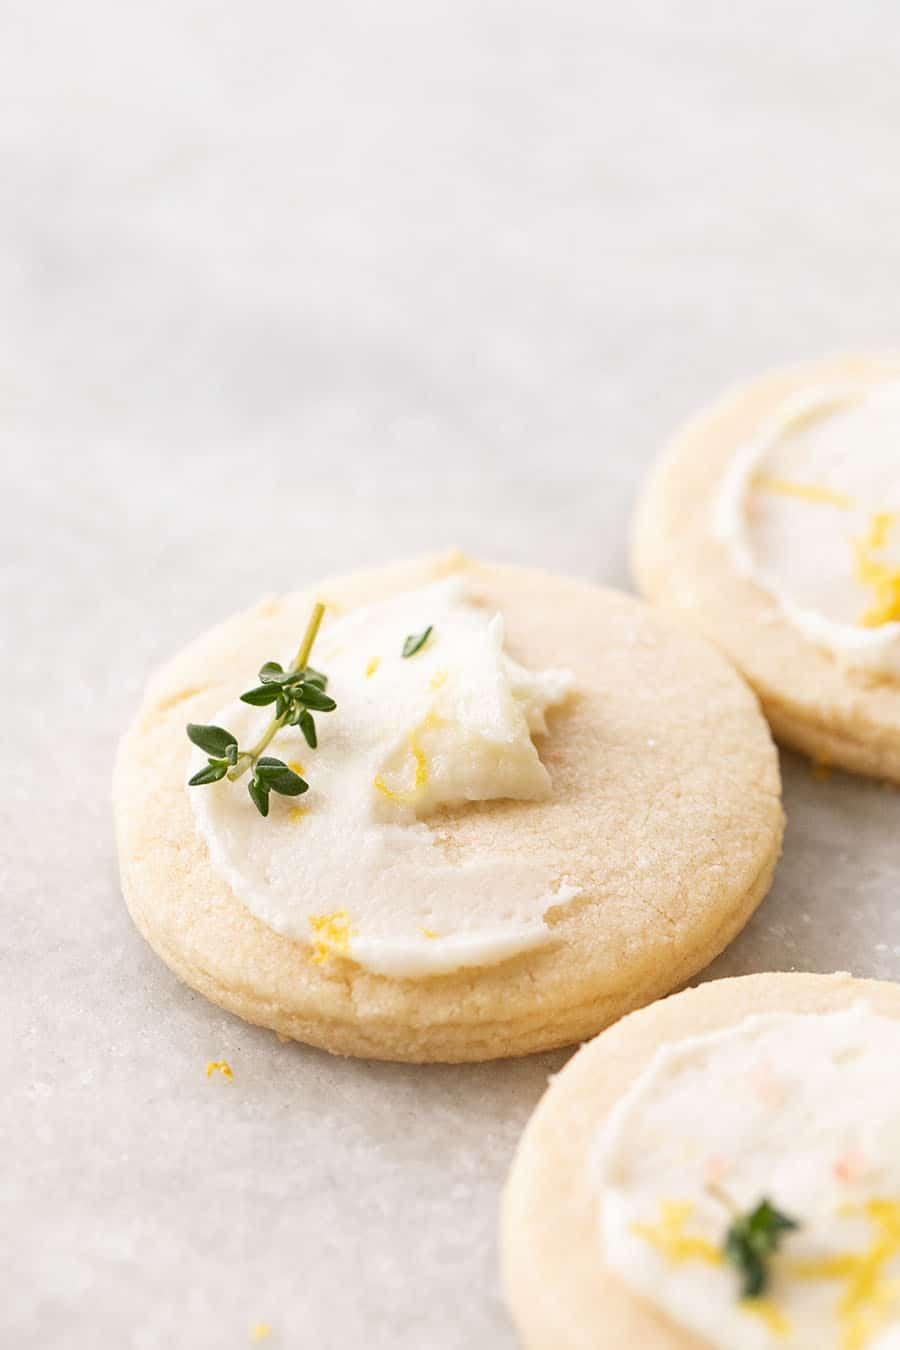 Lemon & Thyme Shortbread Cookie with a little lemon frosting and a sprig of thyme.